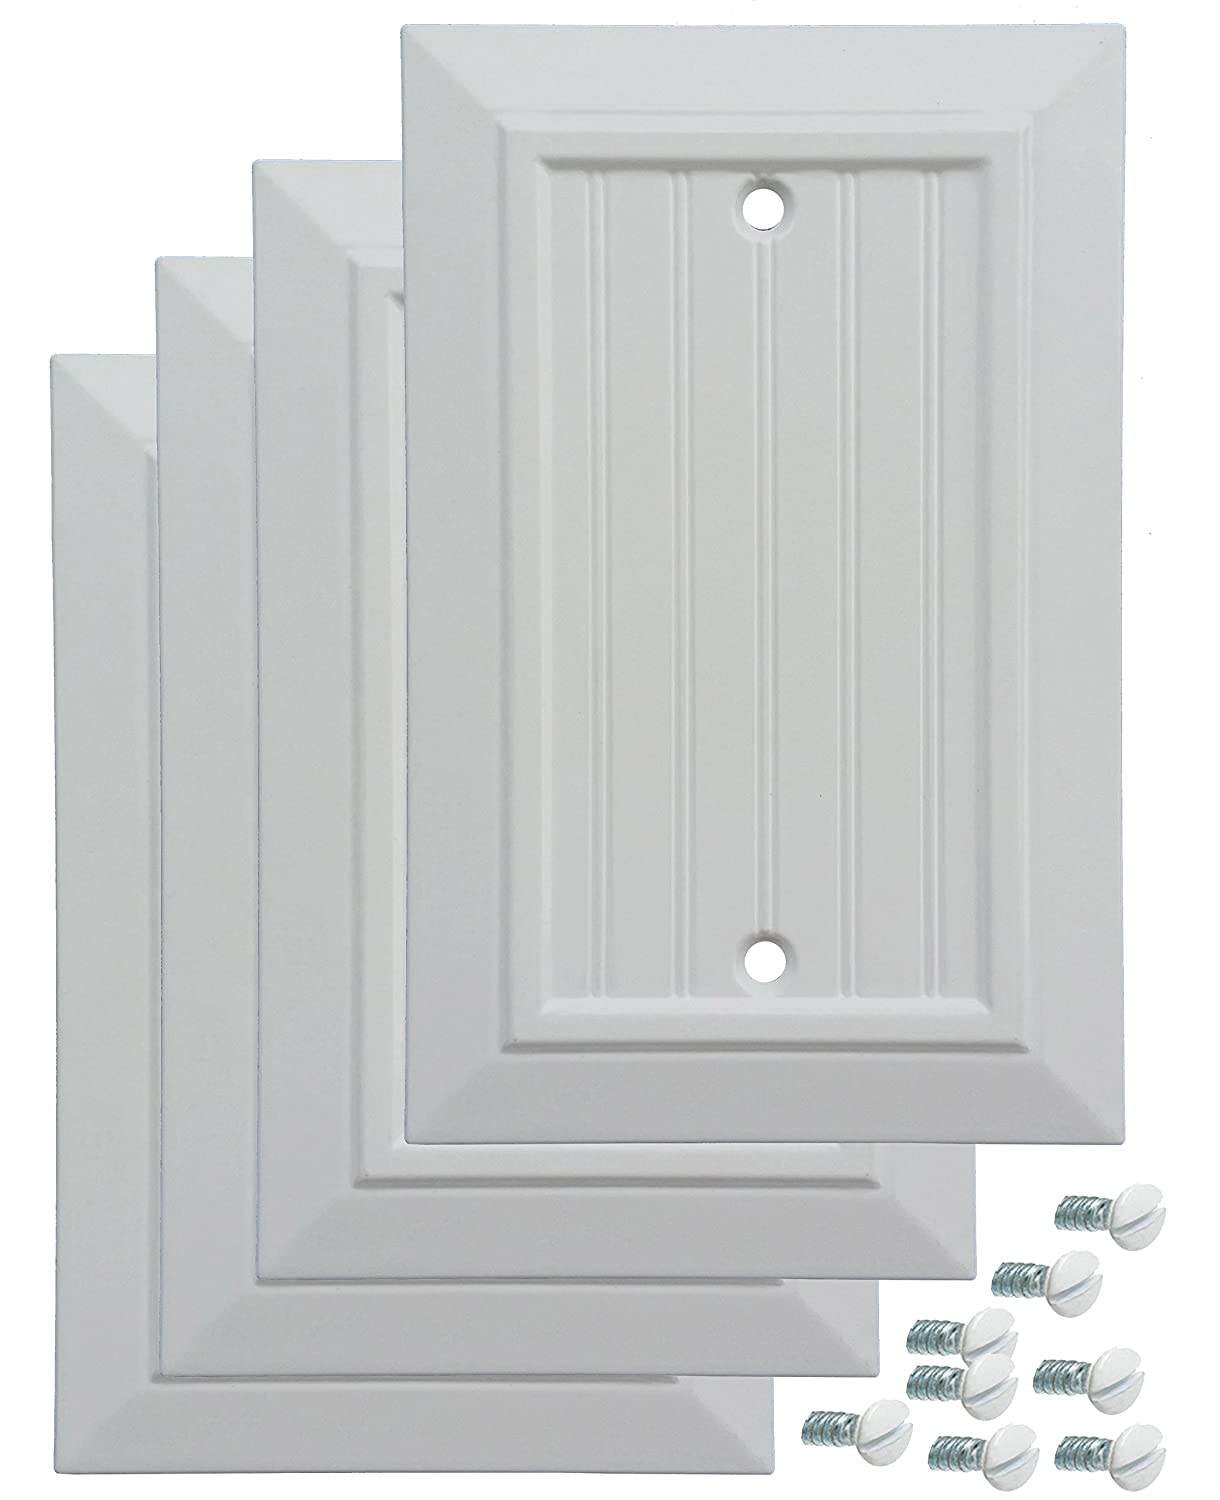 Pack of 4 Wall Plate Outlet Switch Covers by SleekLighting   Classic Beadborad Wall plates  Variety of Styles: Decorator/Duplex/Toggle/Blank/& Combo   Size: 1 Gang Blank